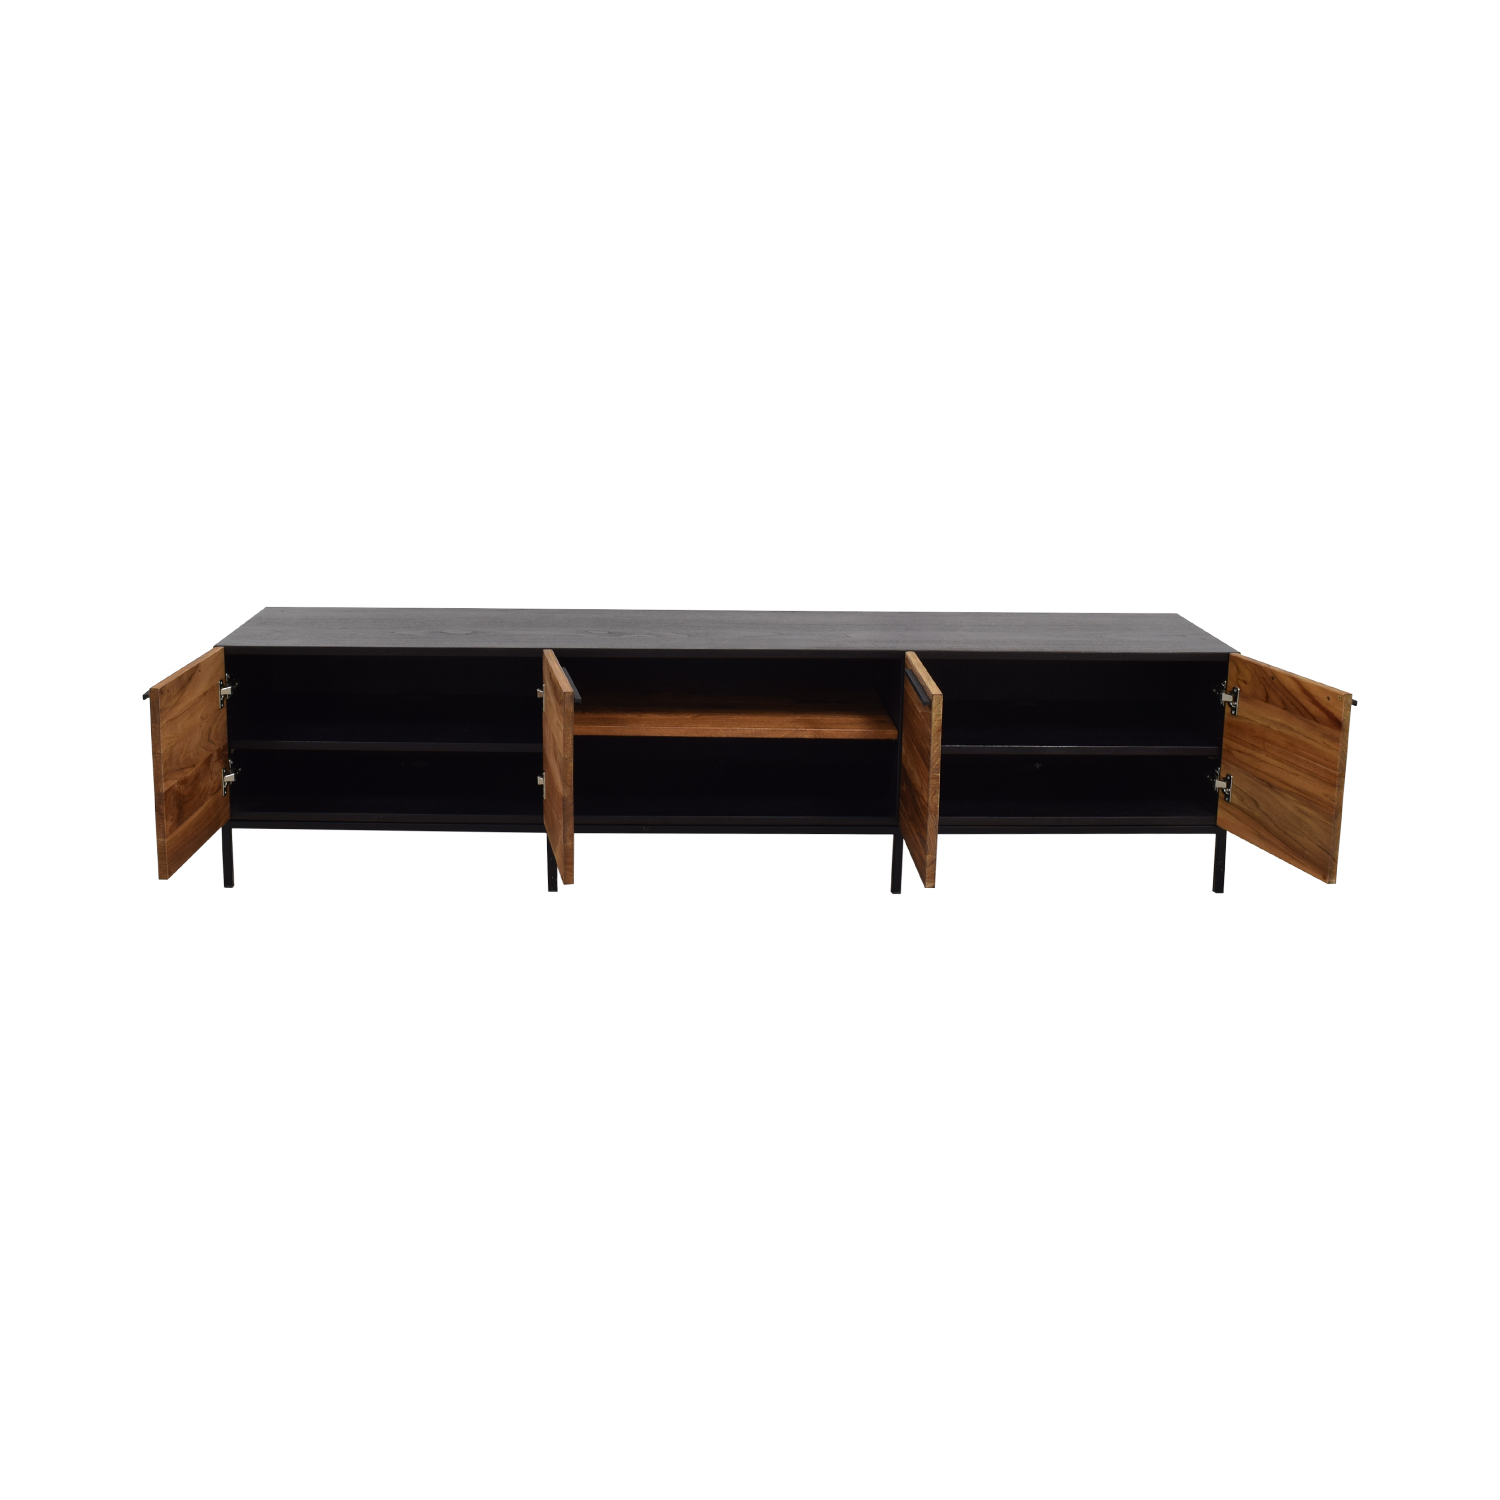 Crate & Barrel Crate & Barrel Rigby Natural Large Media Console with Base for sale